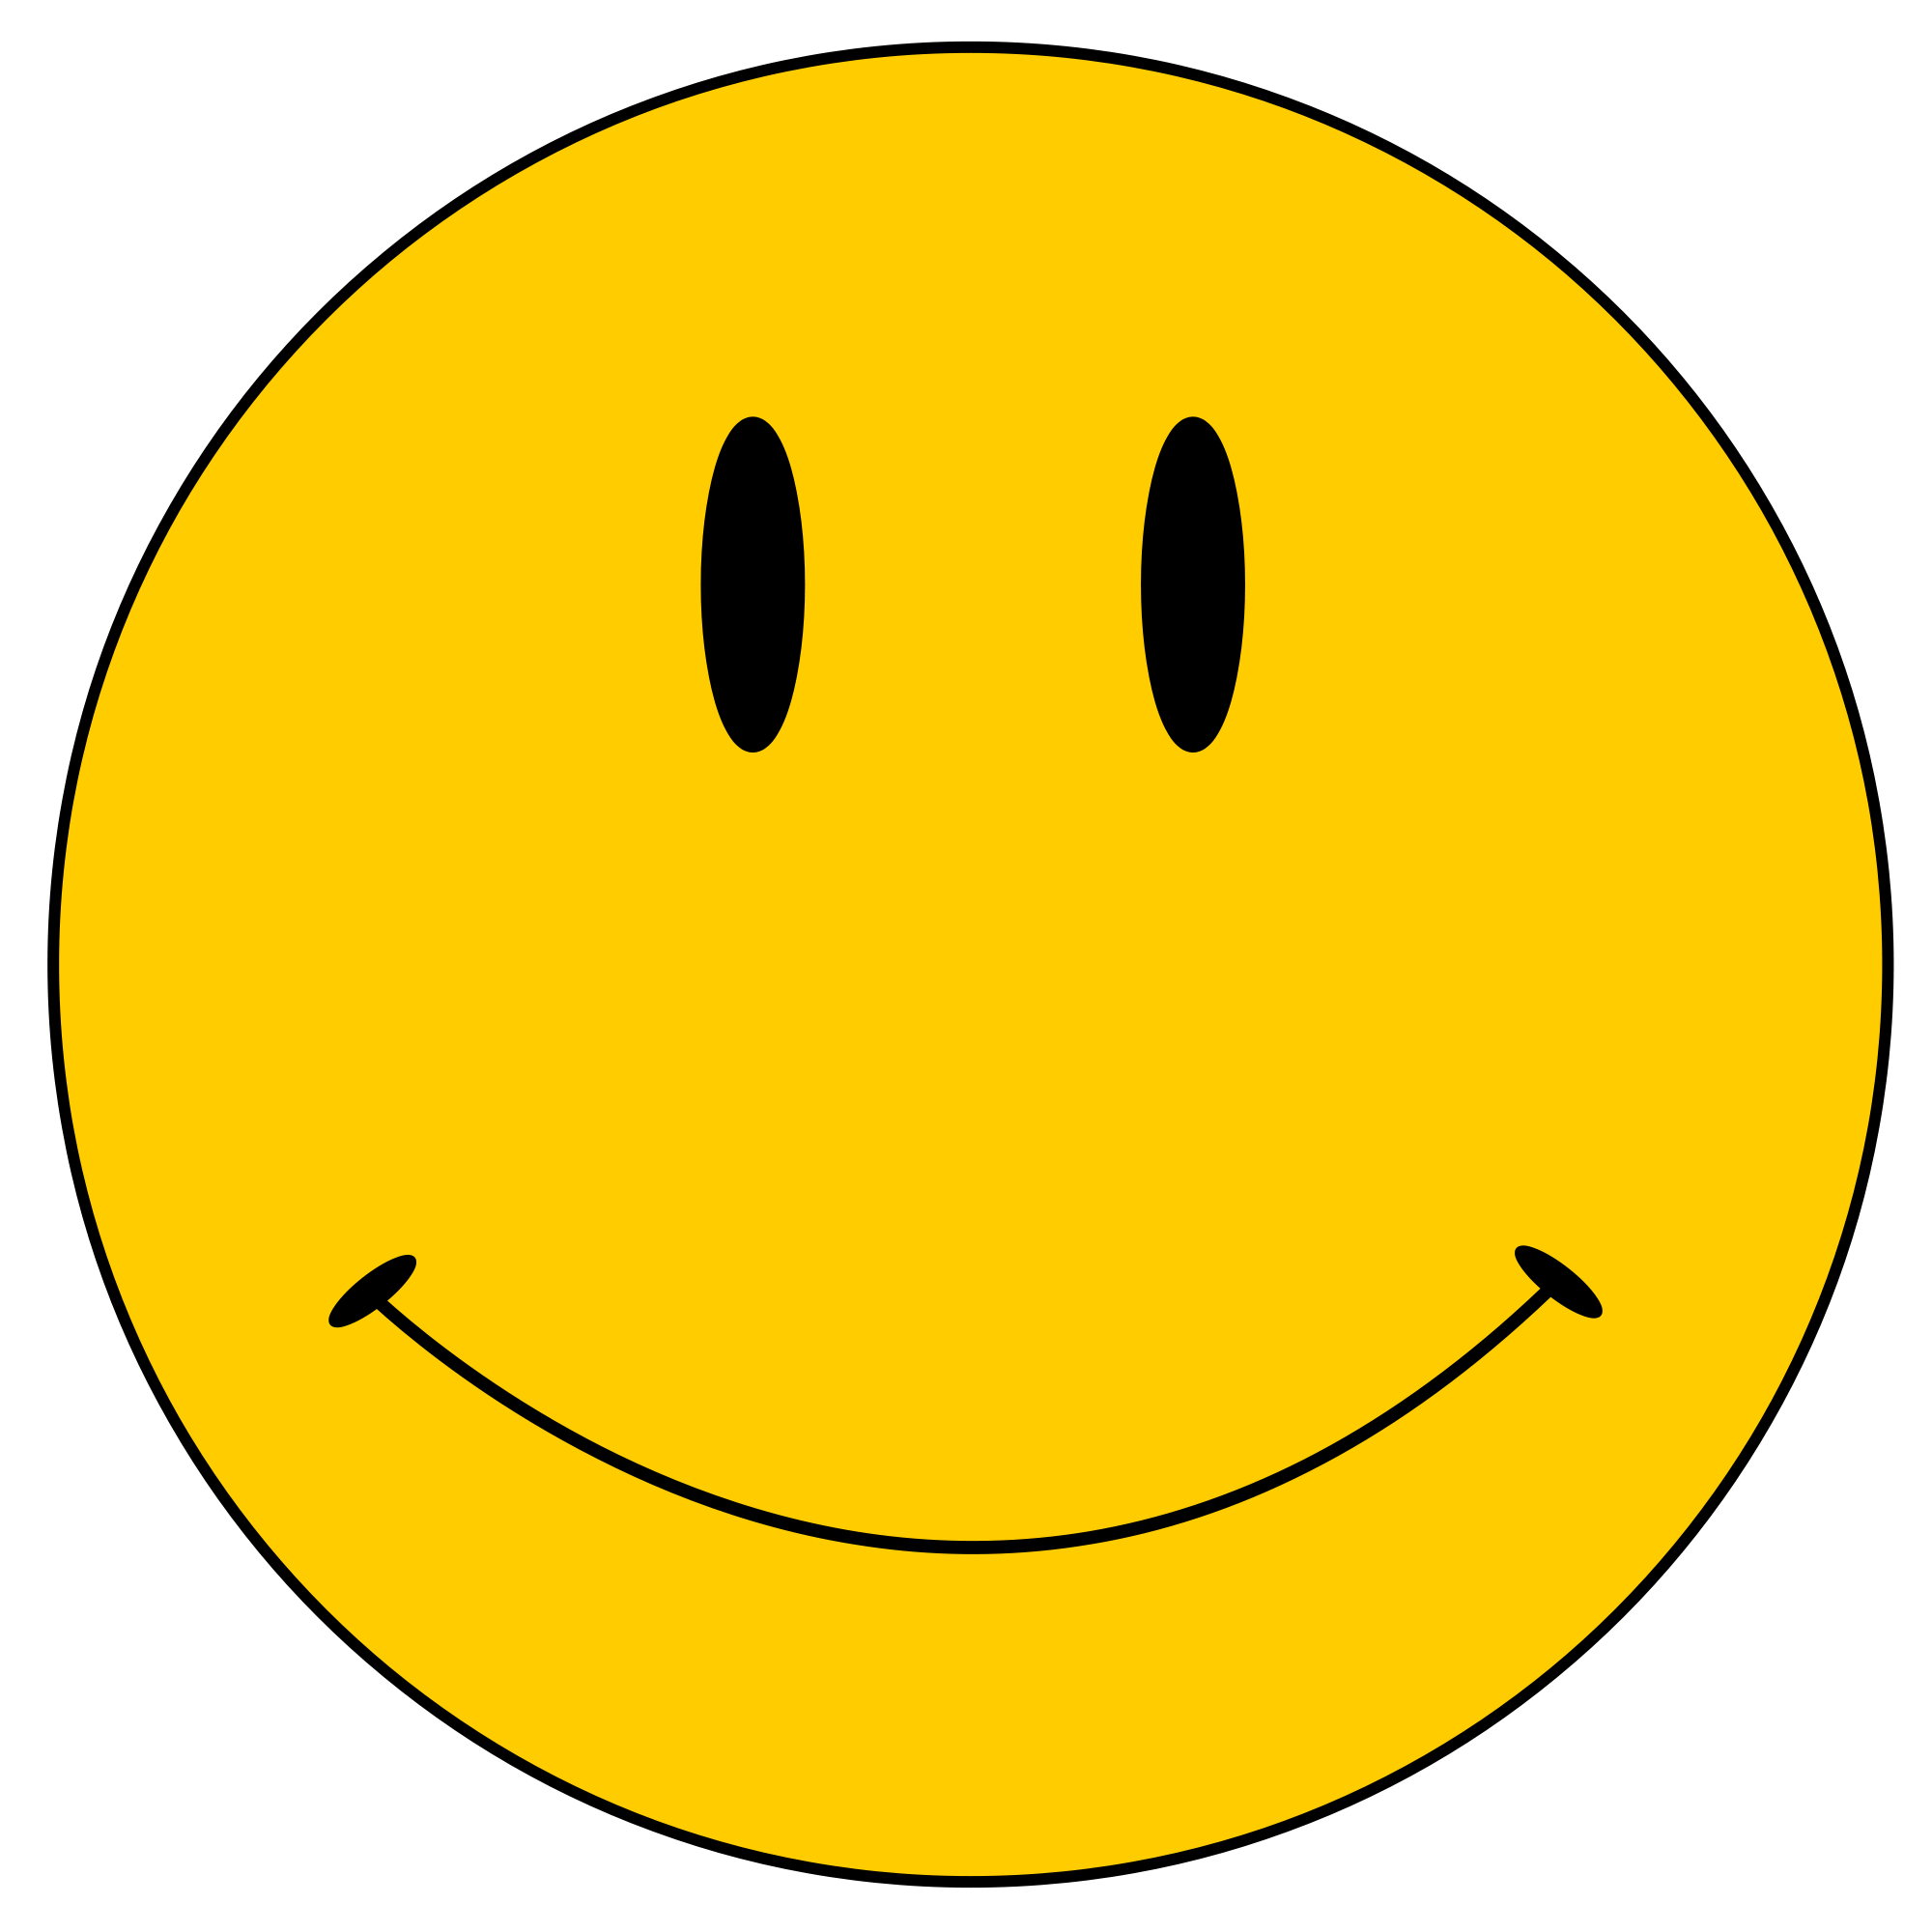 Smiley face clip art simple. Original clipart clipartix